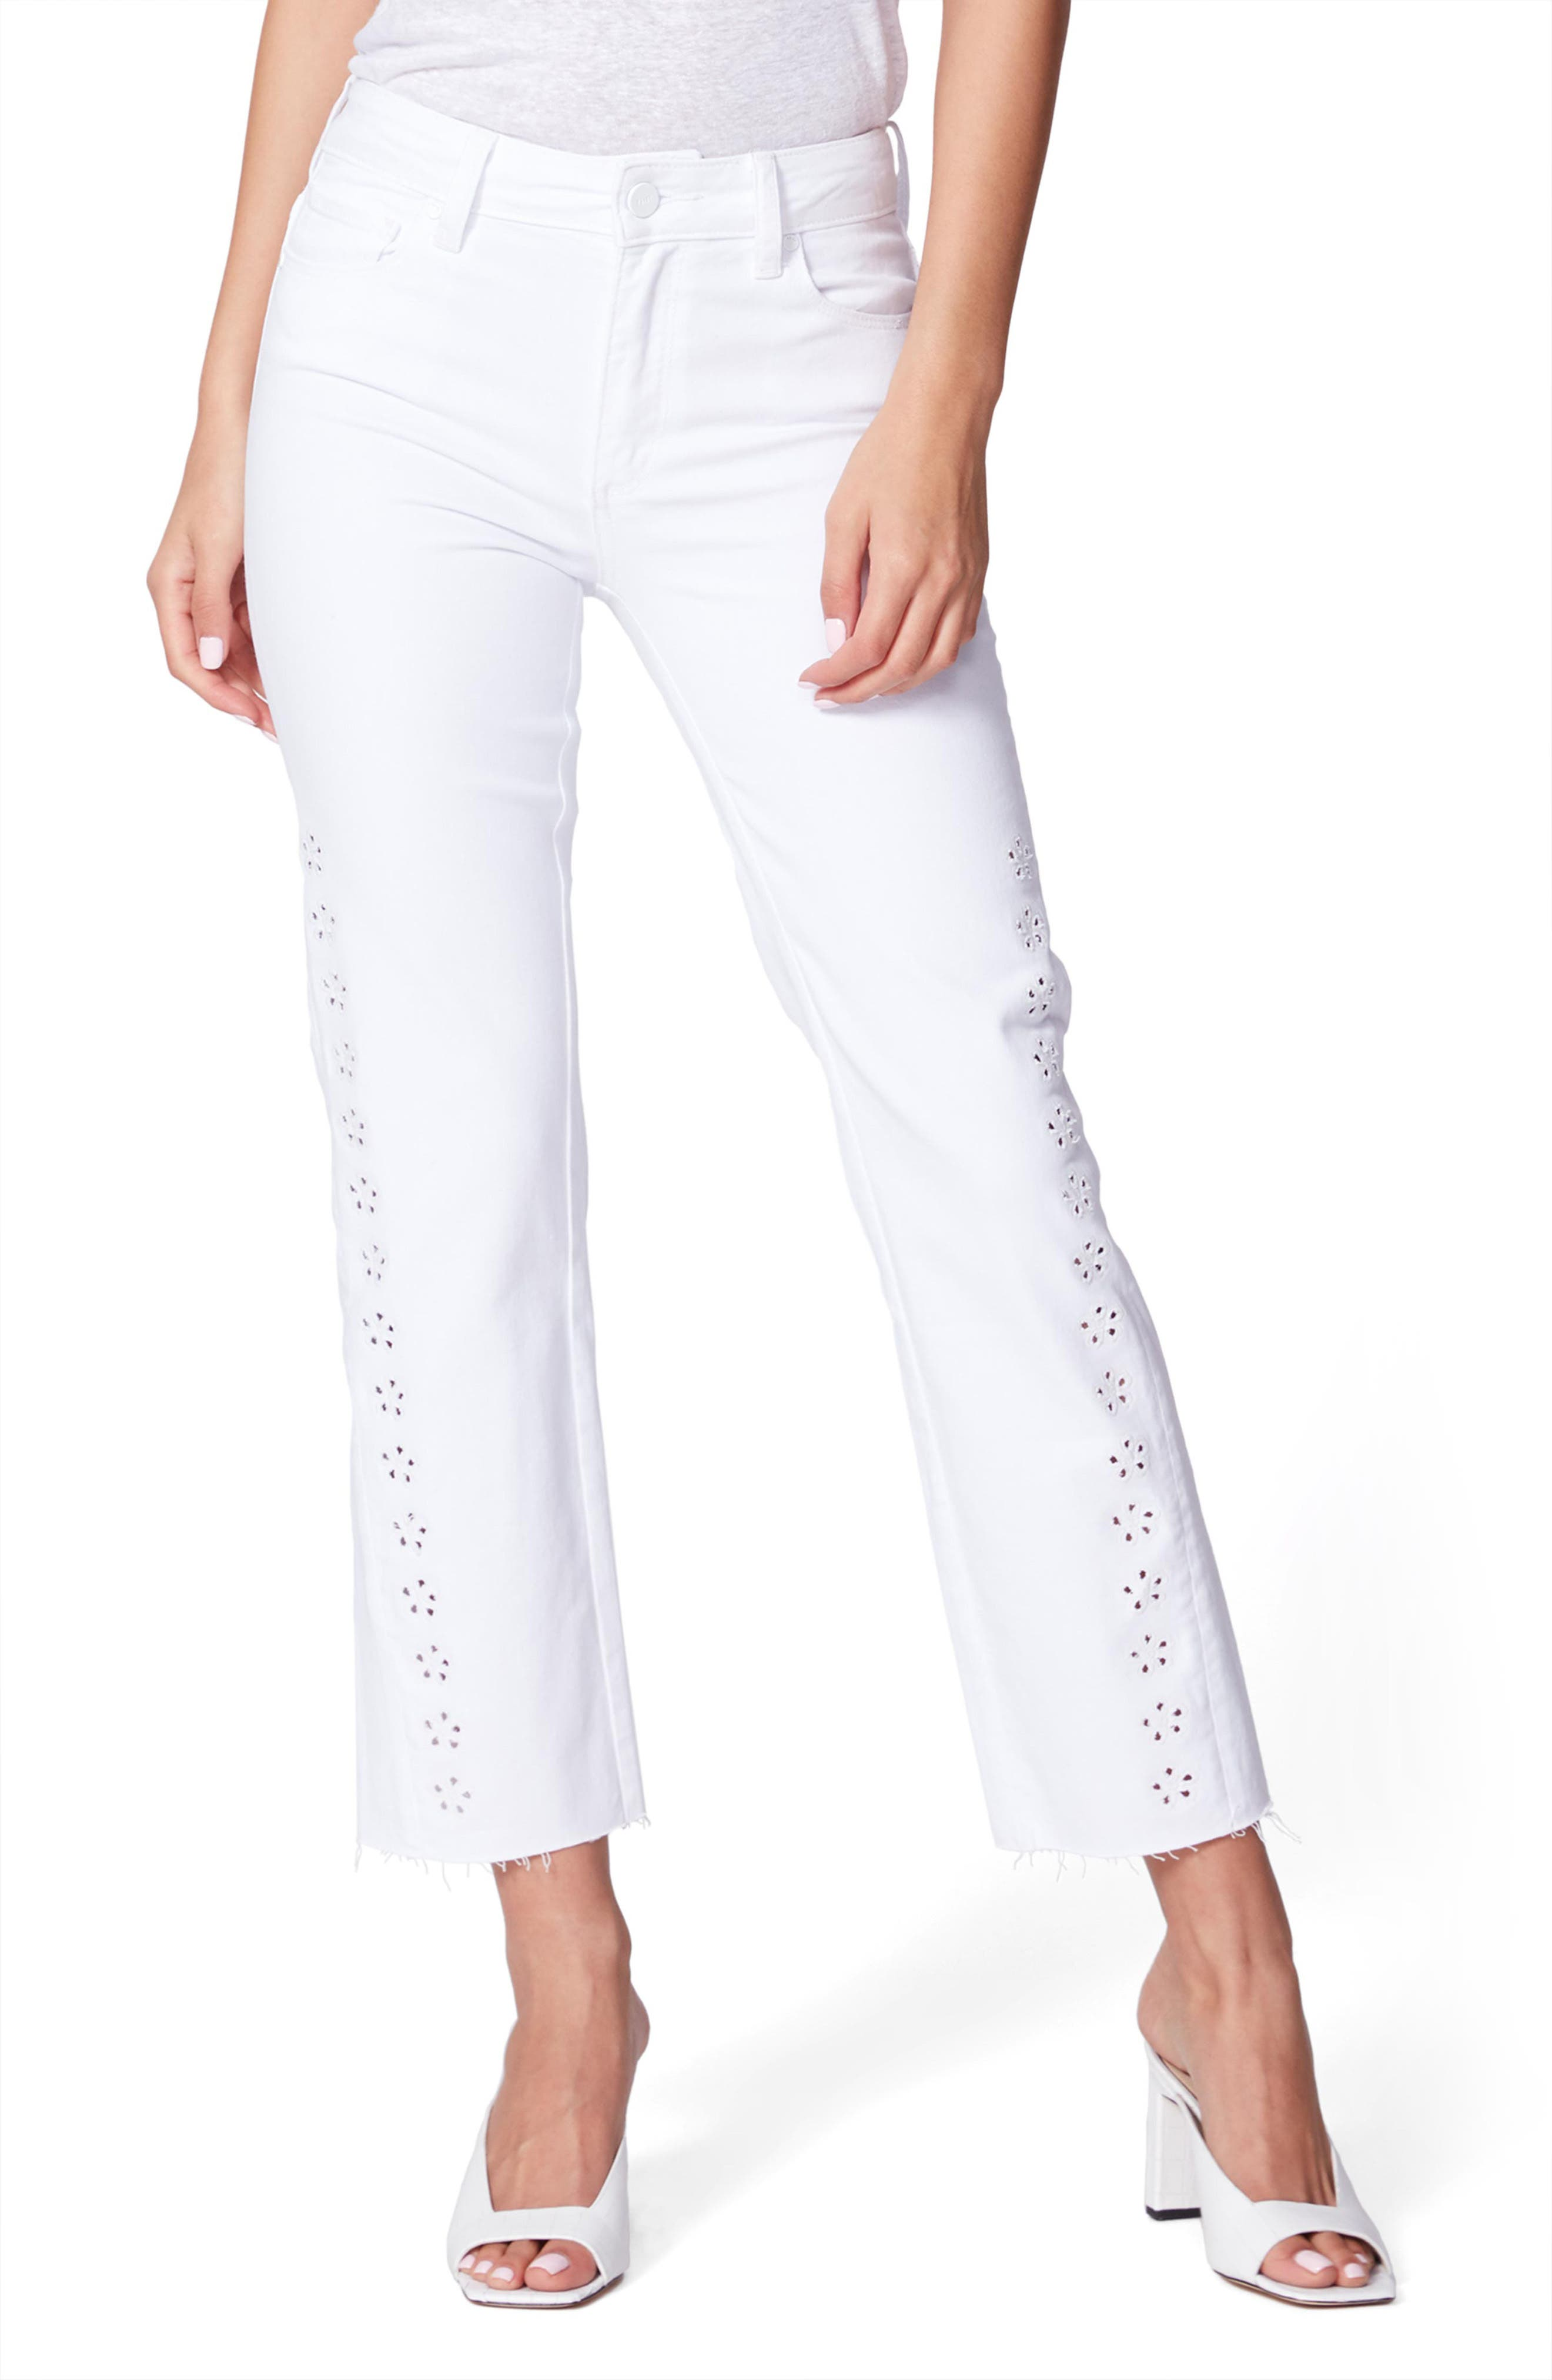 Image of PAIGE Cindy Laser Cut Daisy Raw Hem Jeans